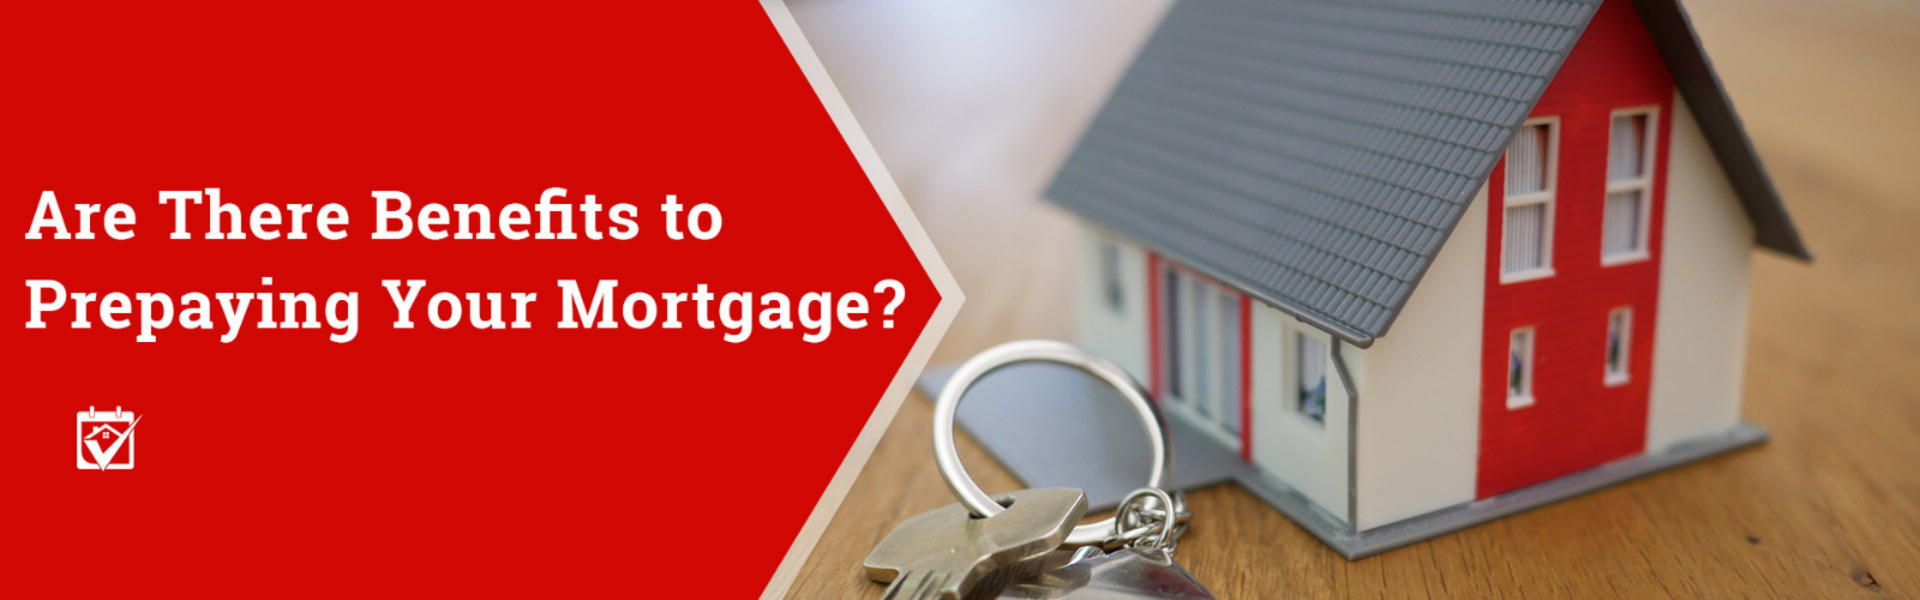 Are There Benefits to Prepaying Your Mortgage?